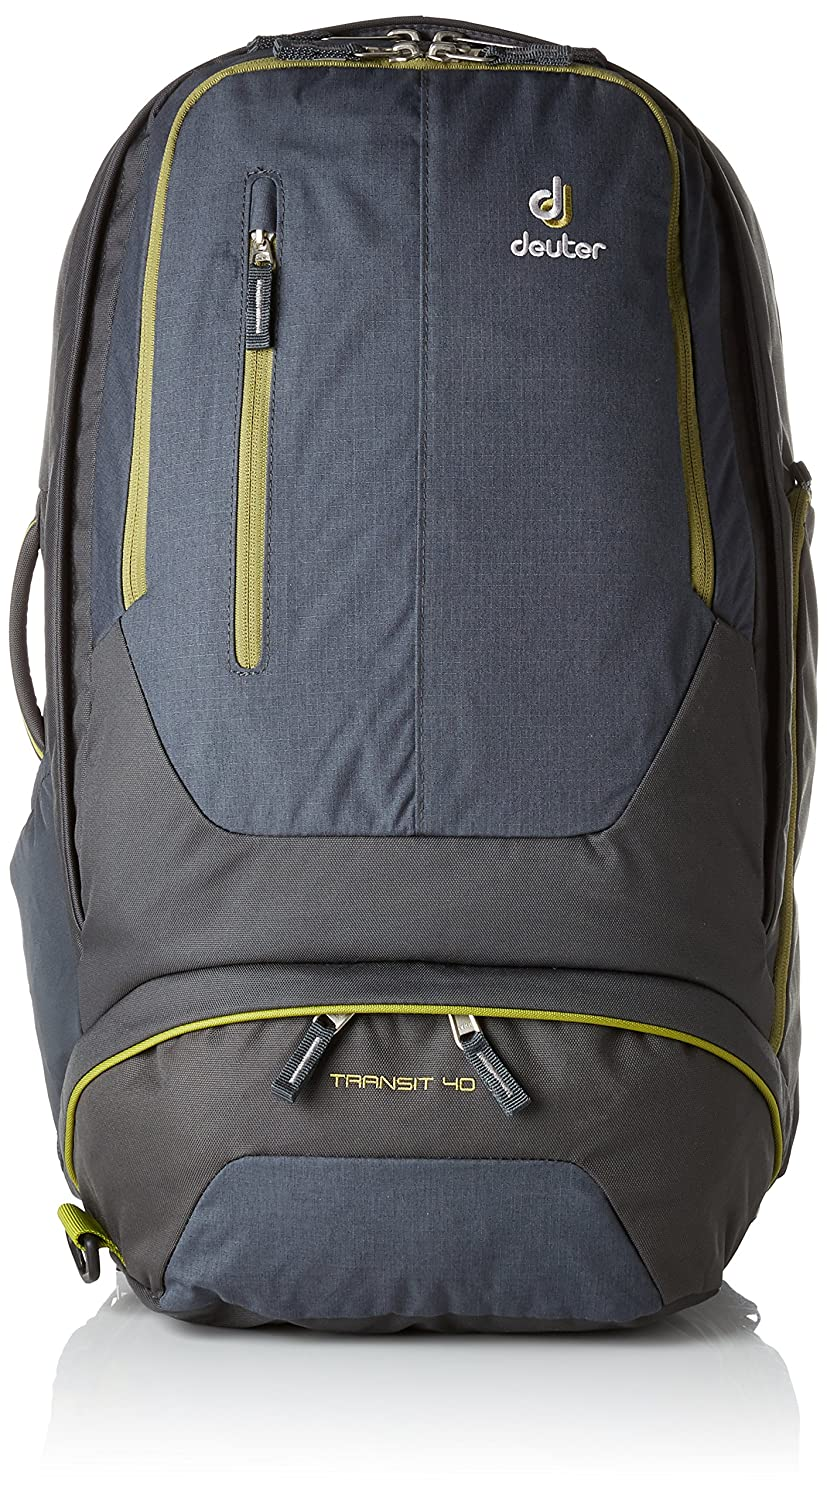 Amazon.com: Deuter Transit 40 Carry-On Travel